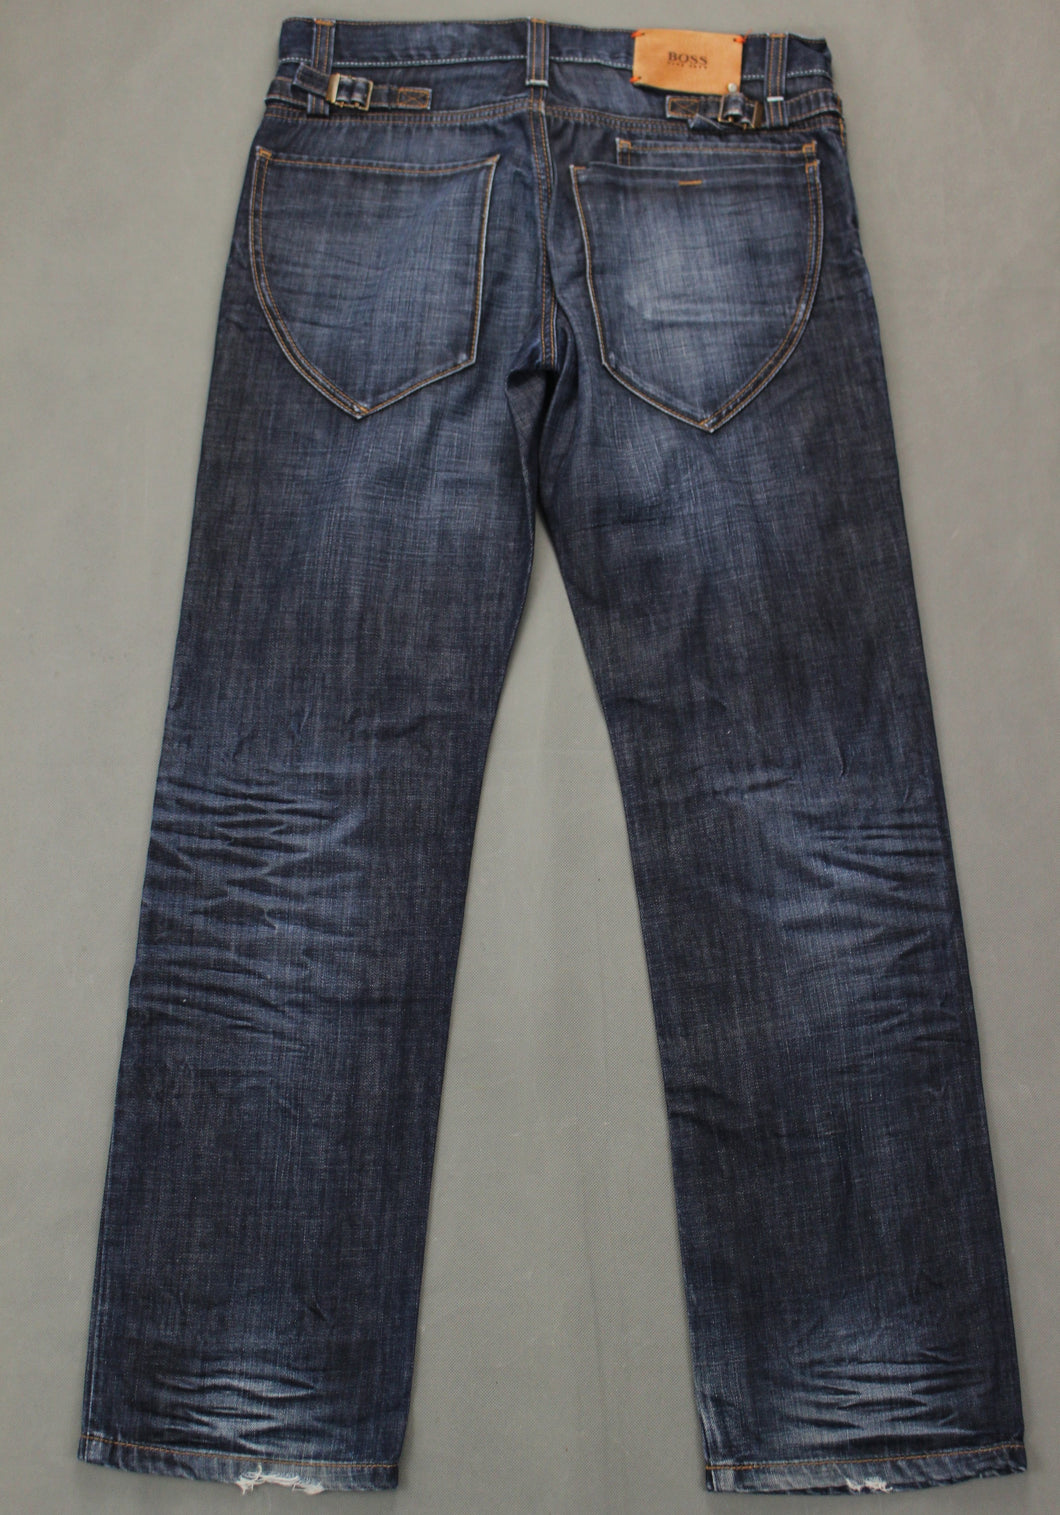 HUGO BOSS Mens Blue Denim HB104.2 Regular Fit JEANS - Size Waist 32